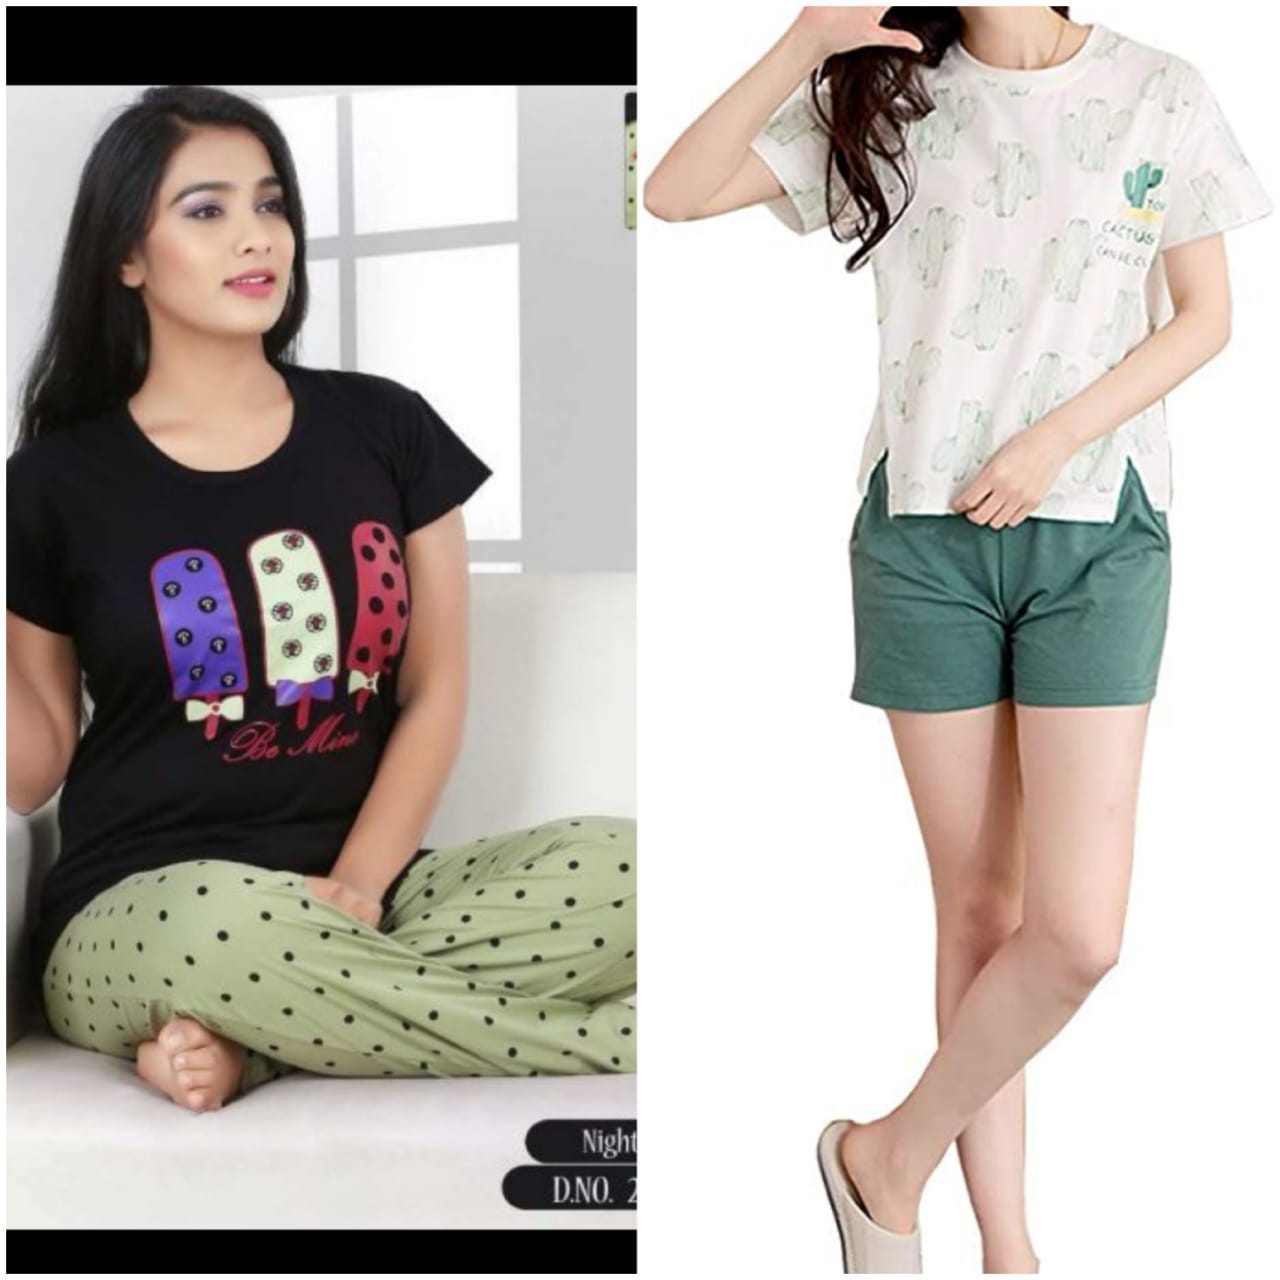 HSF Night Wear for 399/- - hsf41